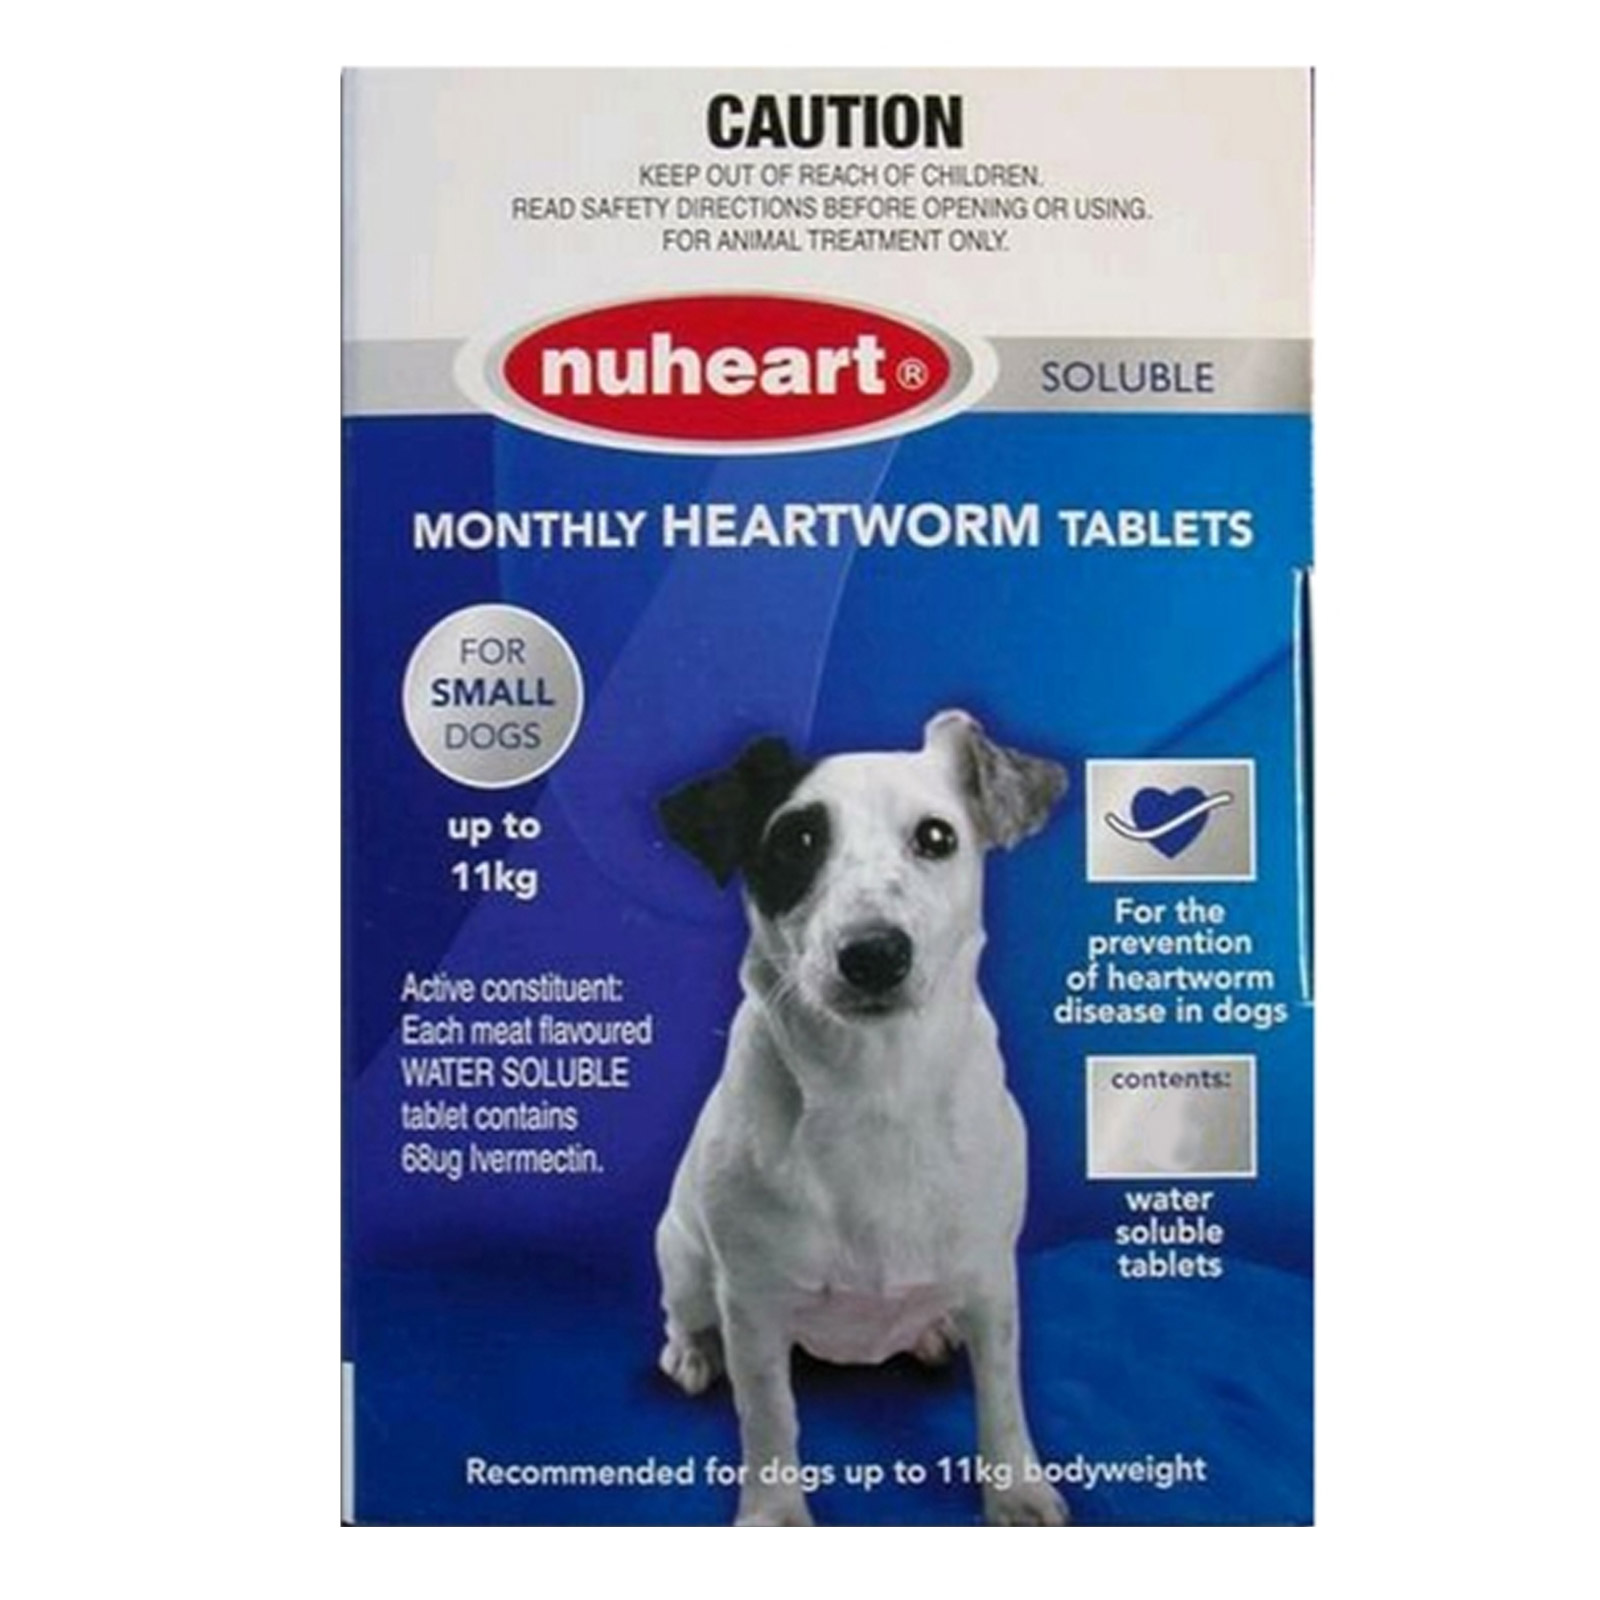 Generic Heartgard For Small Dogs - Nuheart Up To 11Kg (Blue)